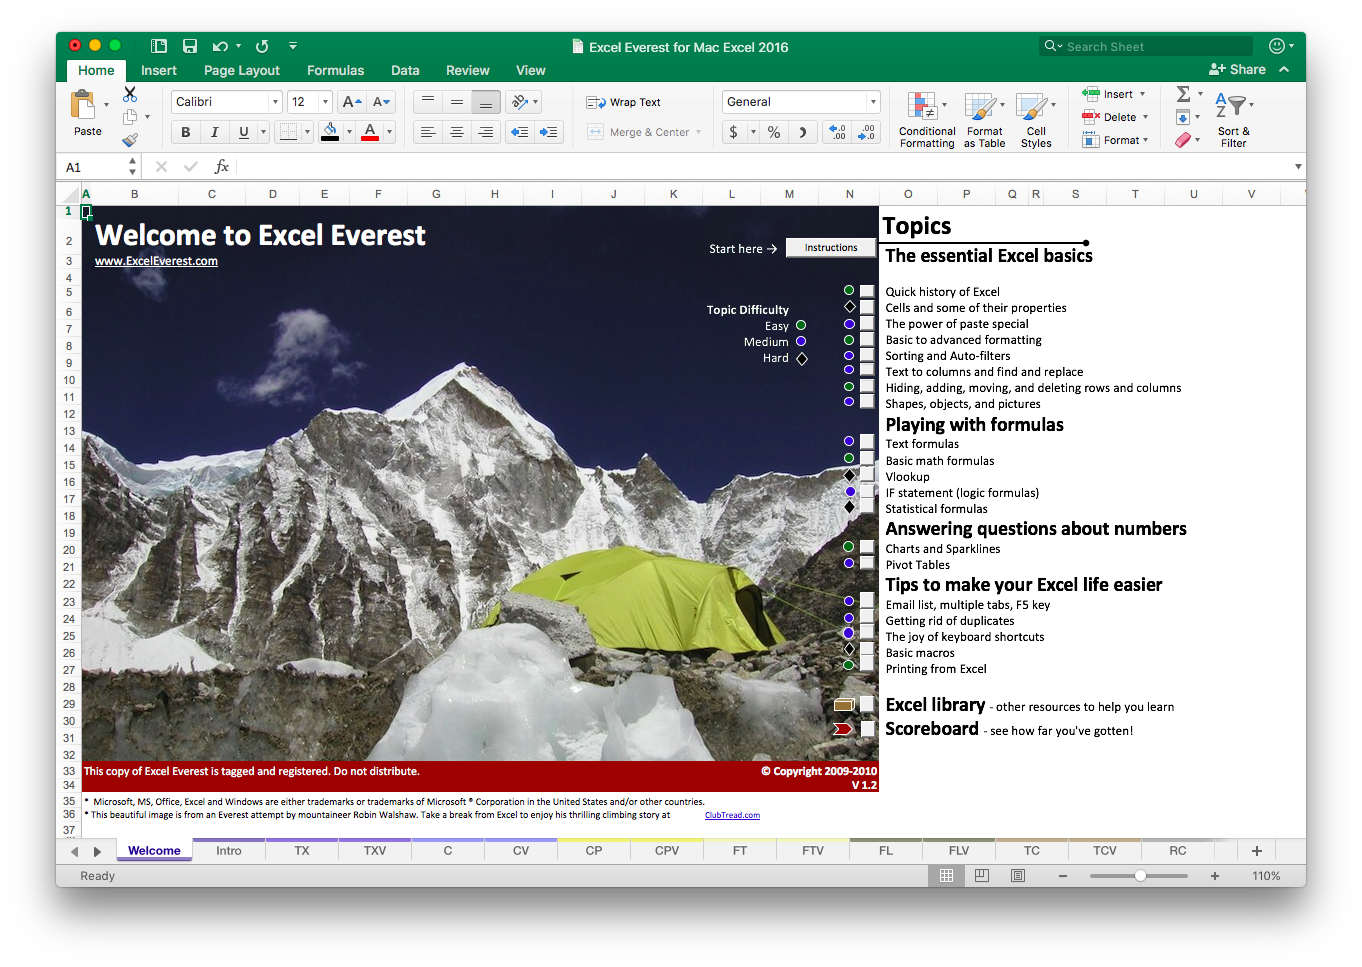 Step 1 - Purchase and Download - Once you purchase Excel Everest, we'll register a copy to you and send you a link for downloading. The entire course takes place inside a big Excel file, so you'll be able to save your progress along the way.